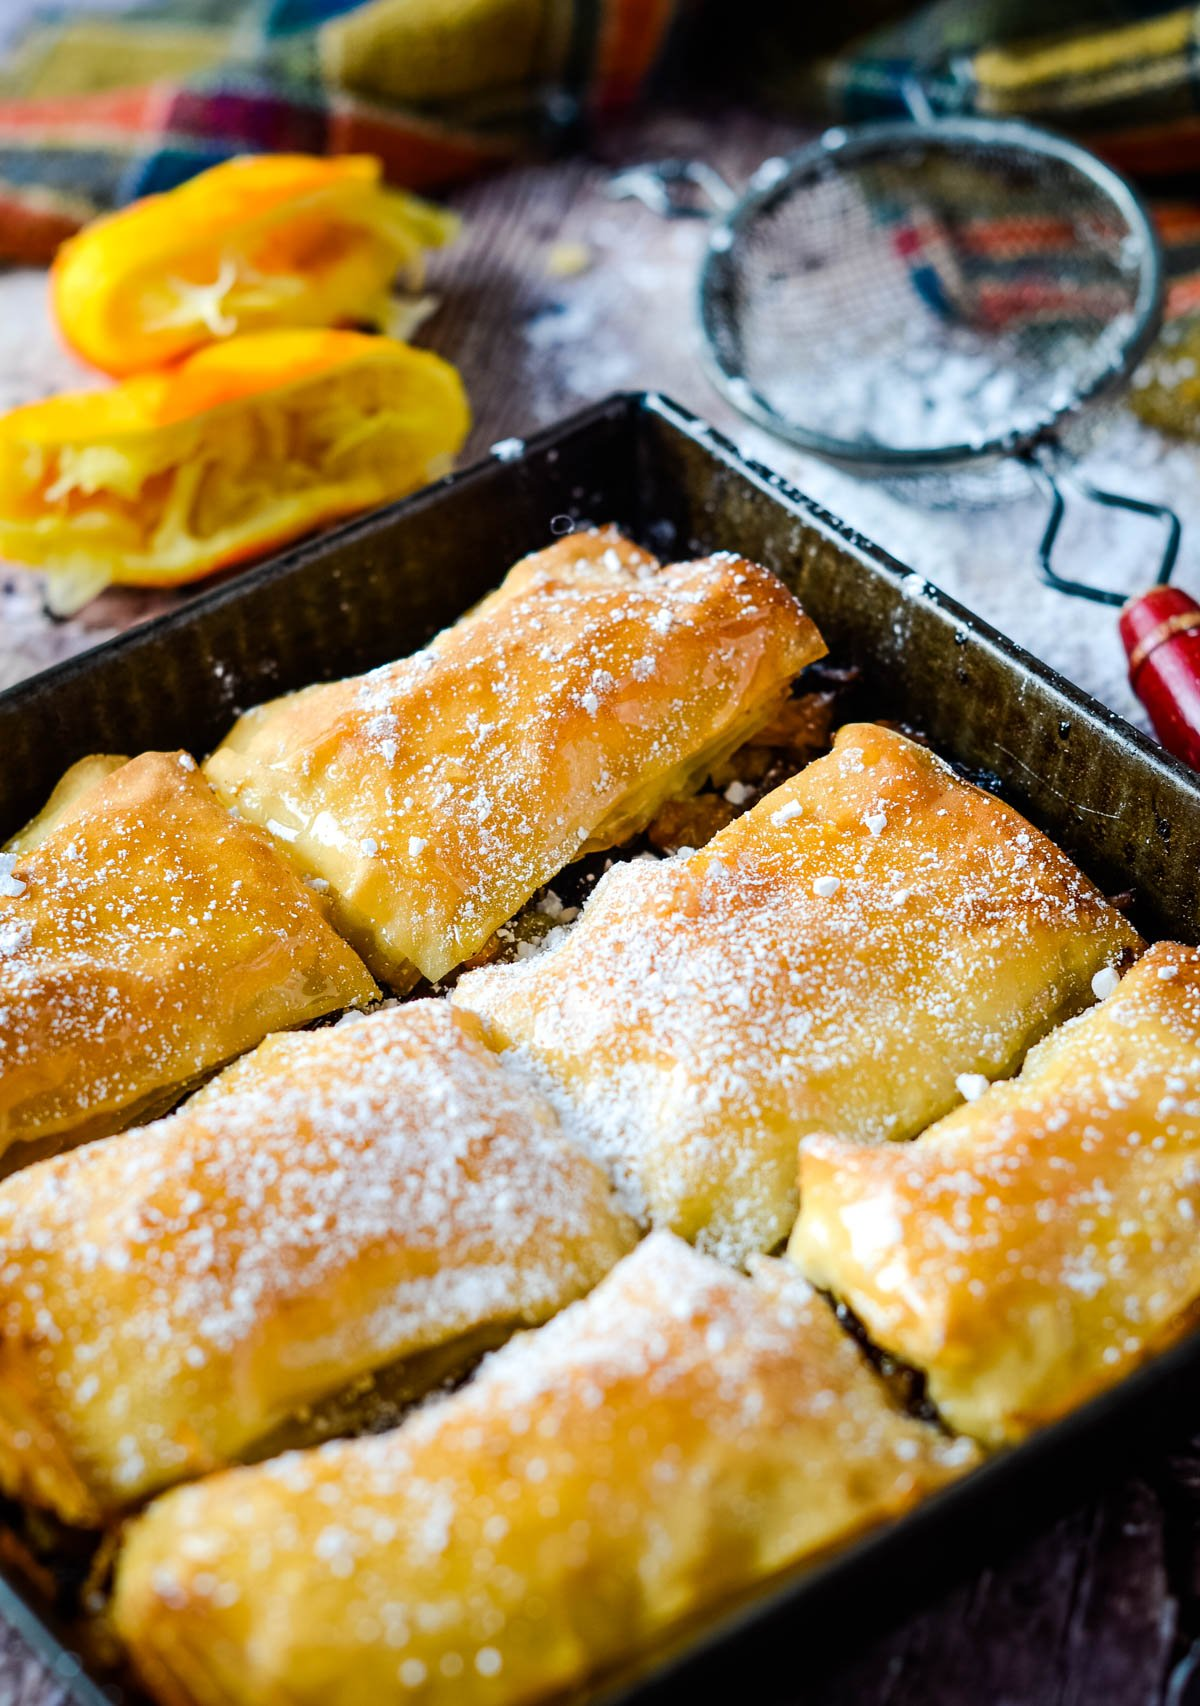 icing sugar sifted over baklava in tin